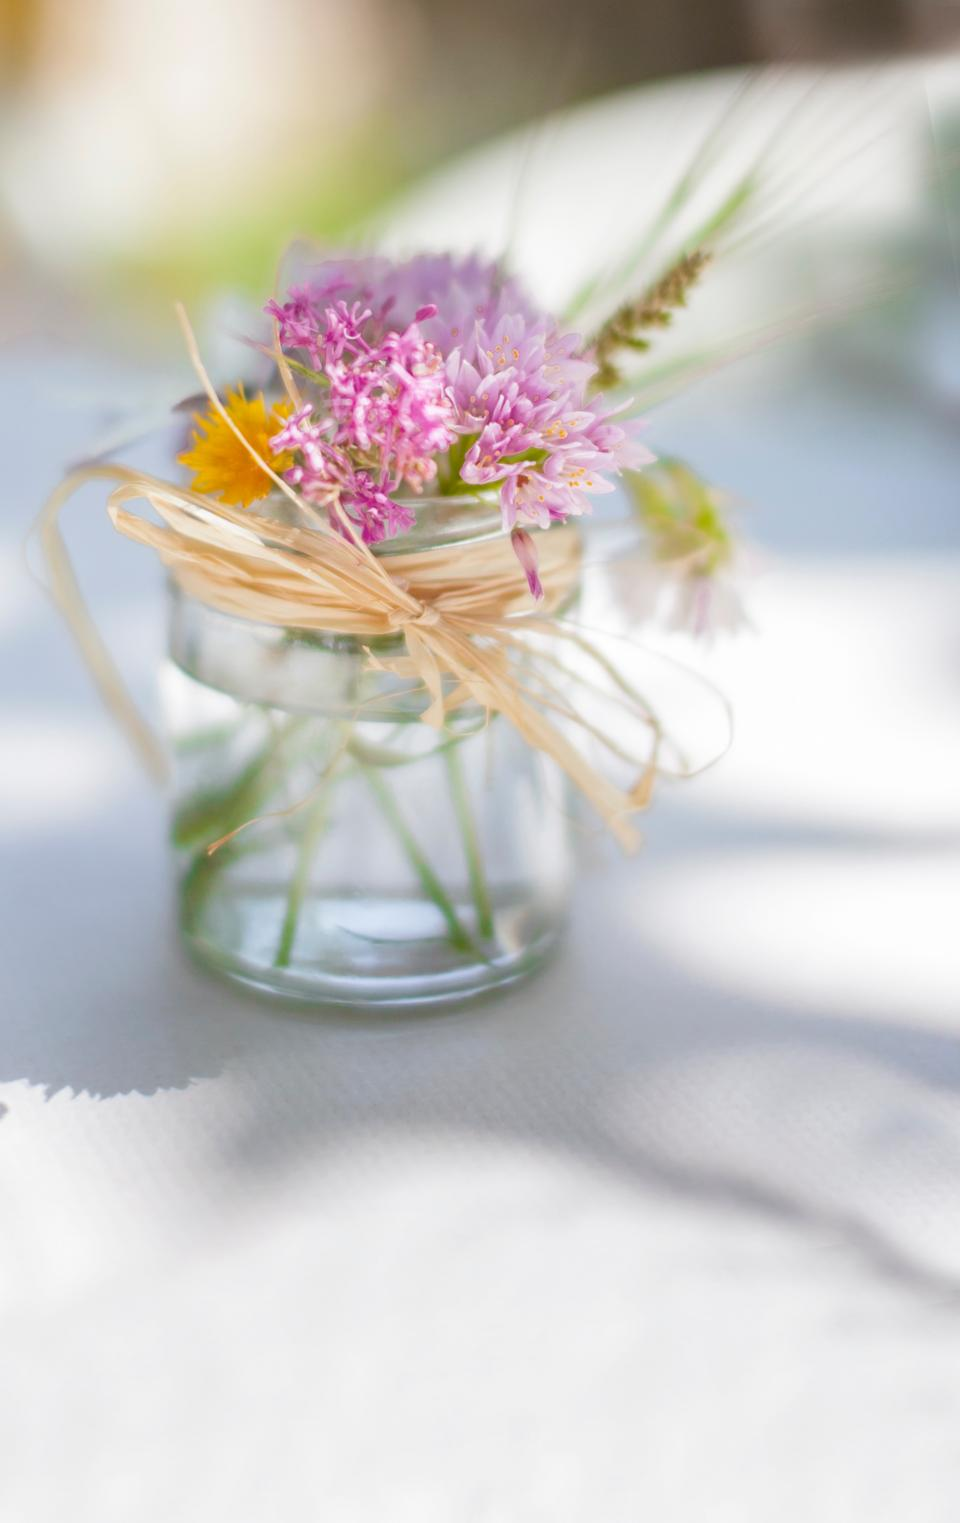 Free stock photo of flowers glass